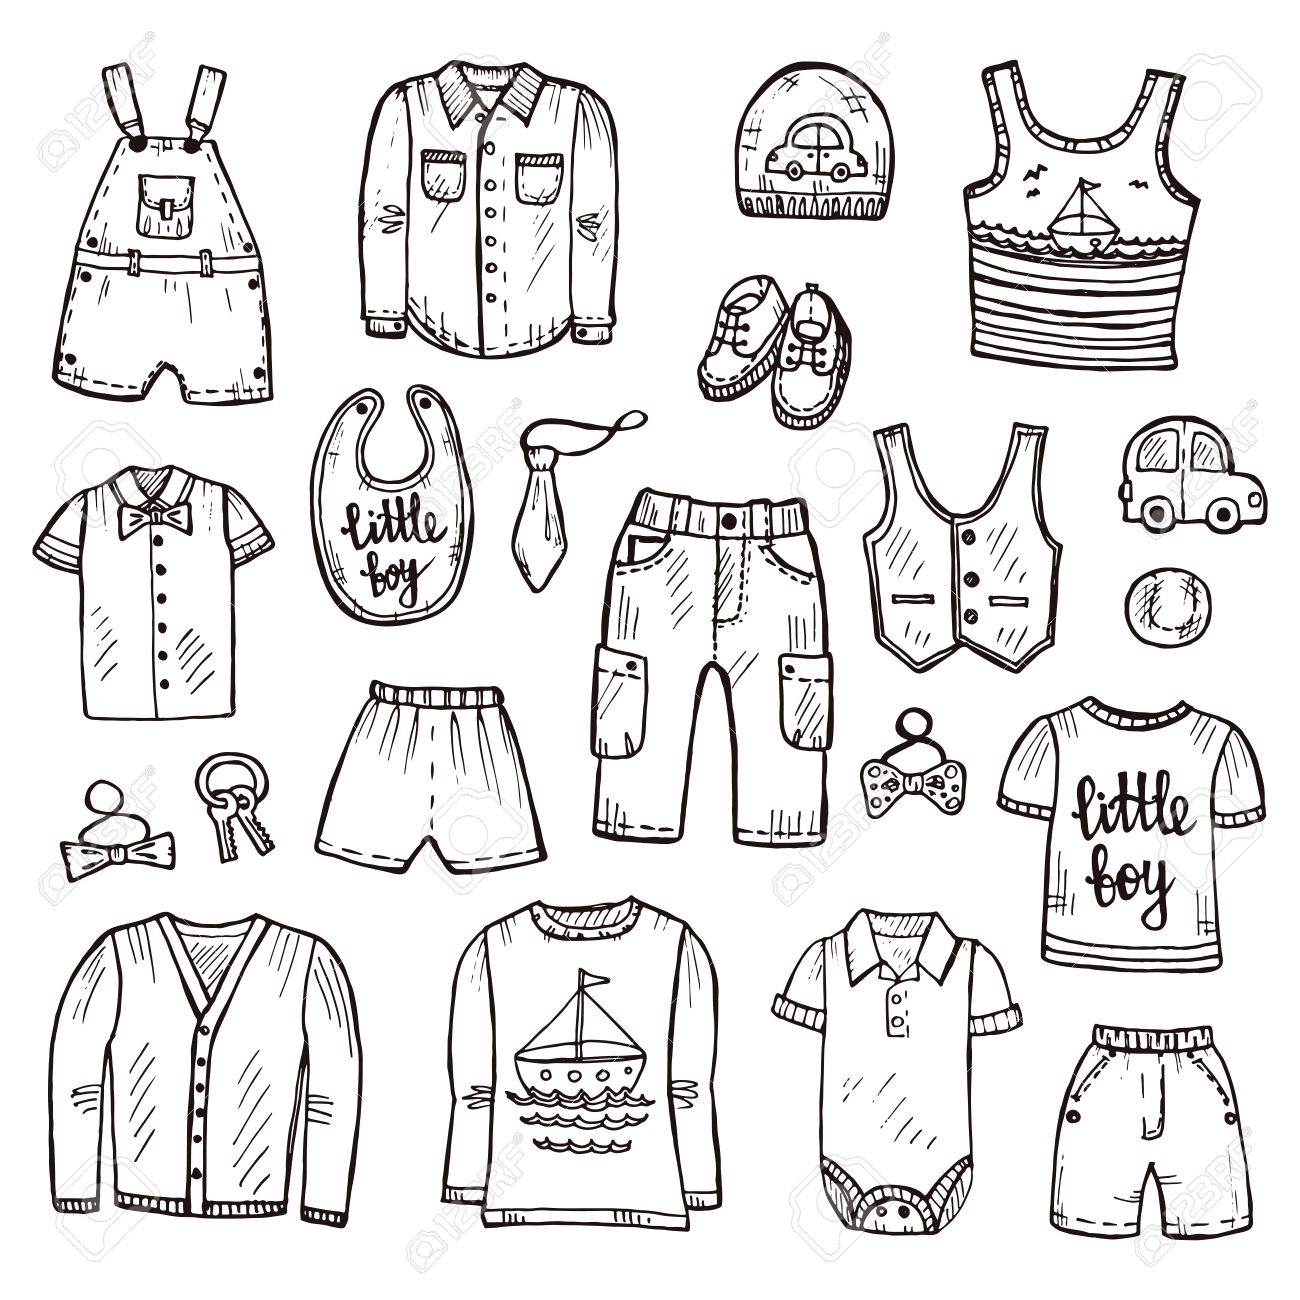 1300x1300 Set Of Cute Hand Drawn Clothes For Baby Boy Including Shirt